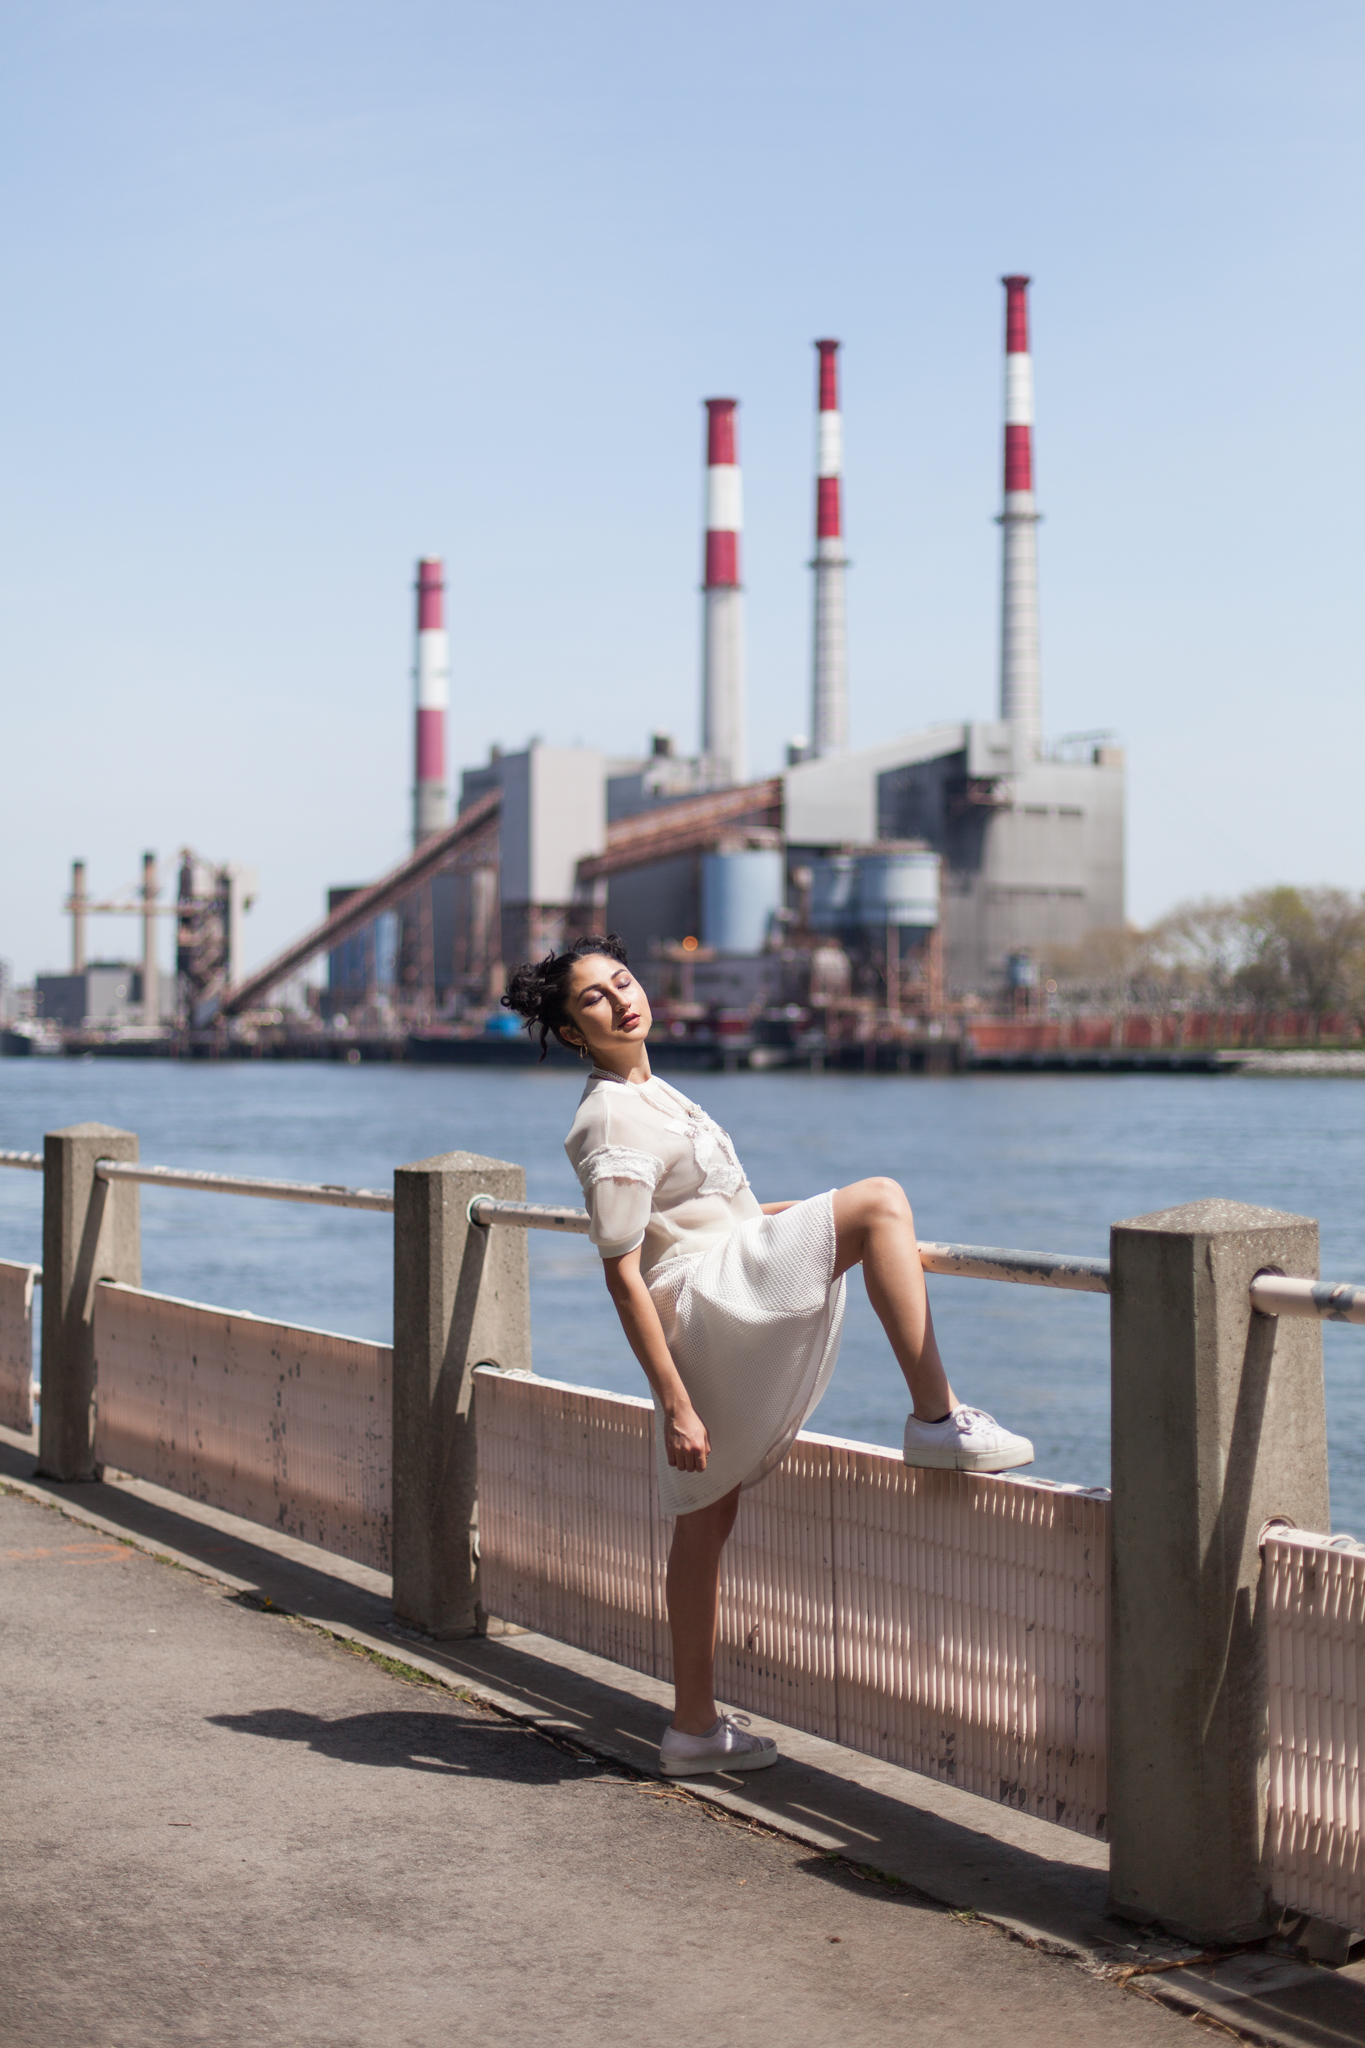 whomstudio_yurie-collins_roosevelt-island-nyc-0009_web.jpg